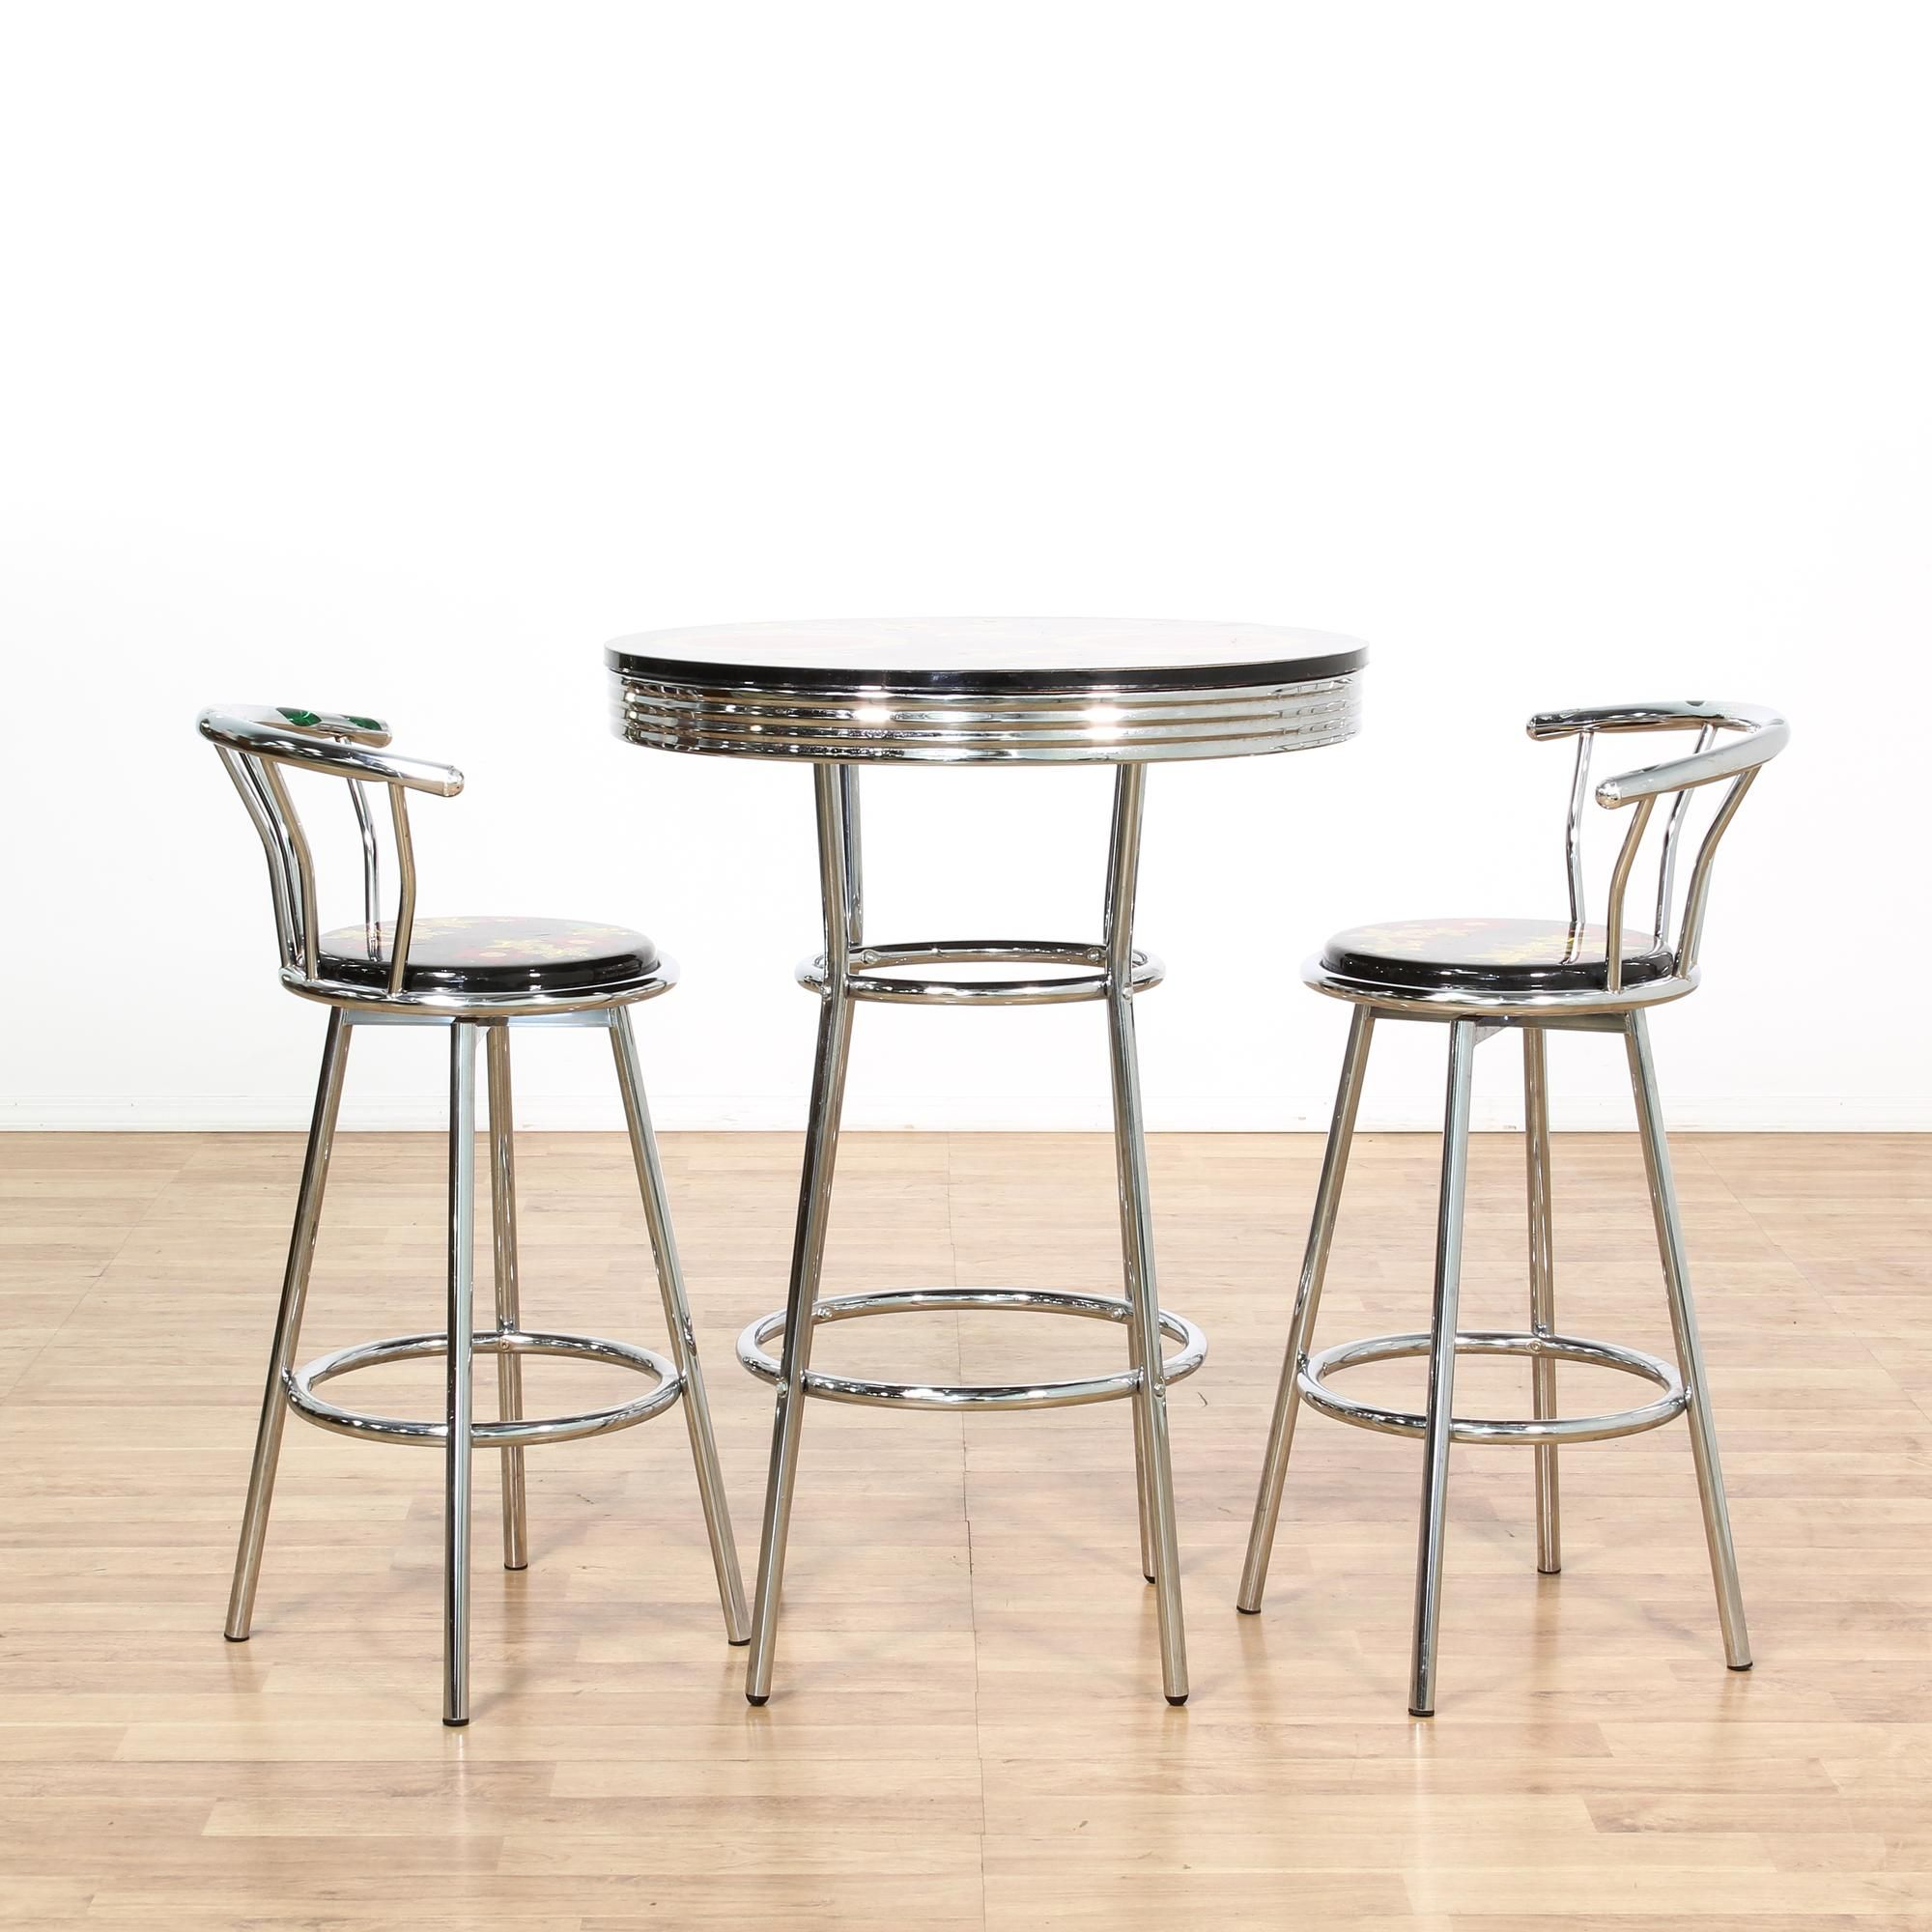 this cafe table set is featured in a shiny polished chrome this bohemian dining